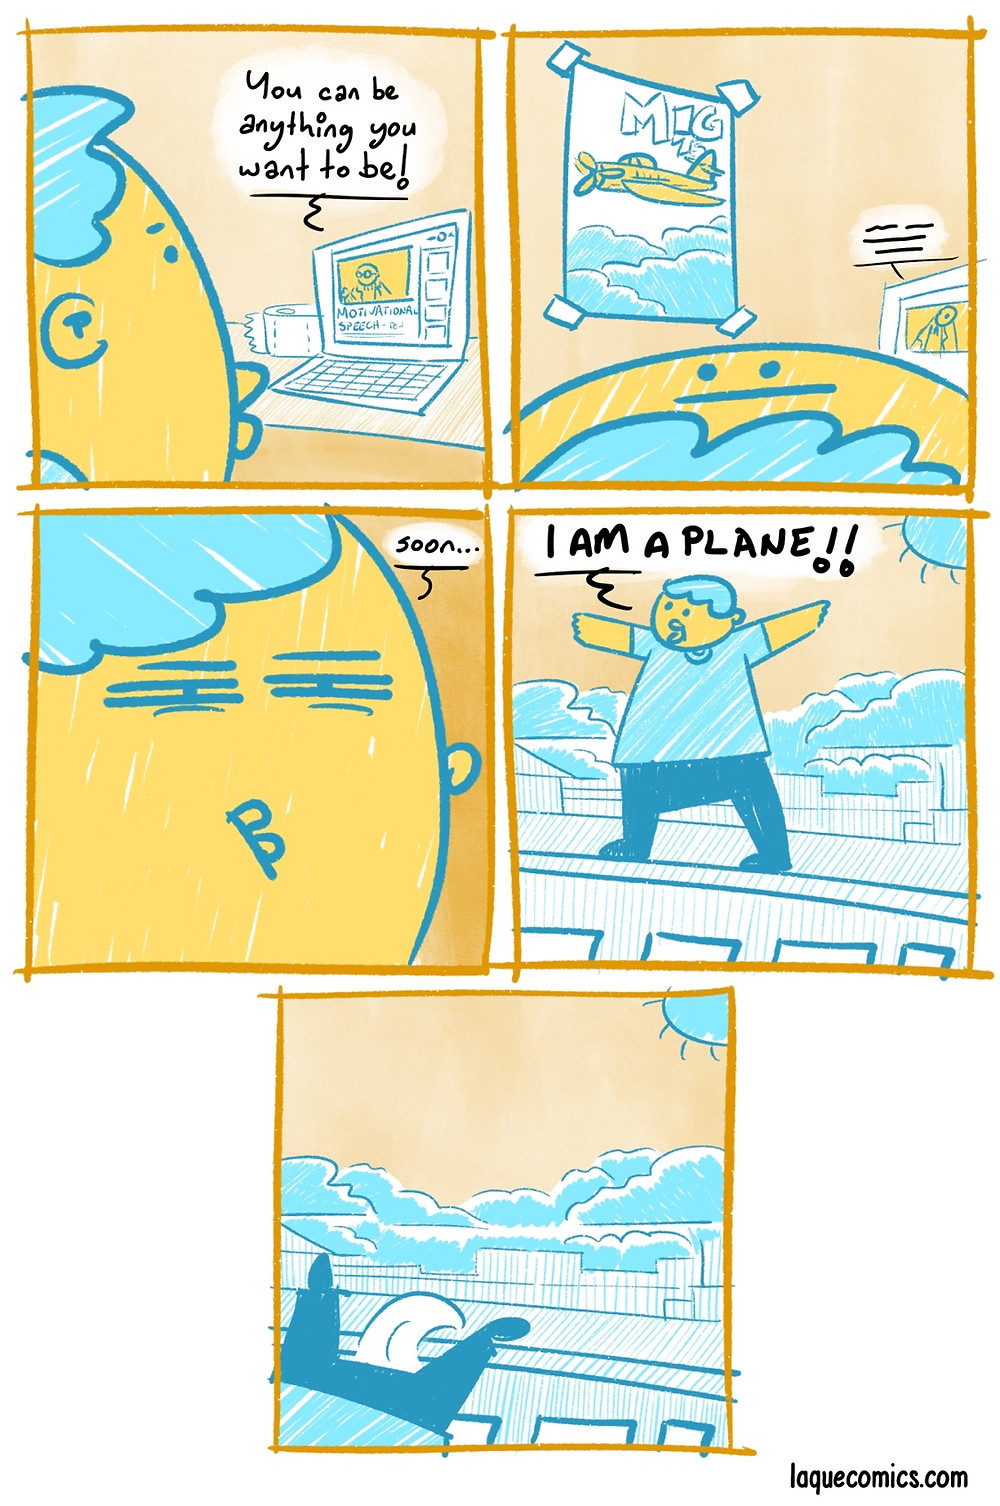 A five-panel comic about a person's dreams.